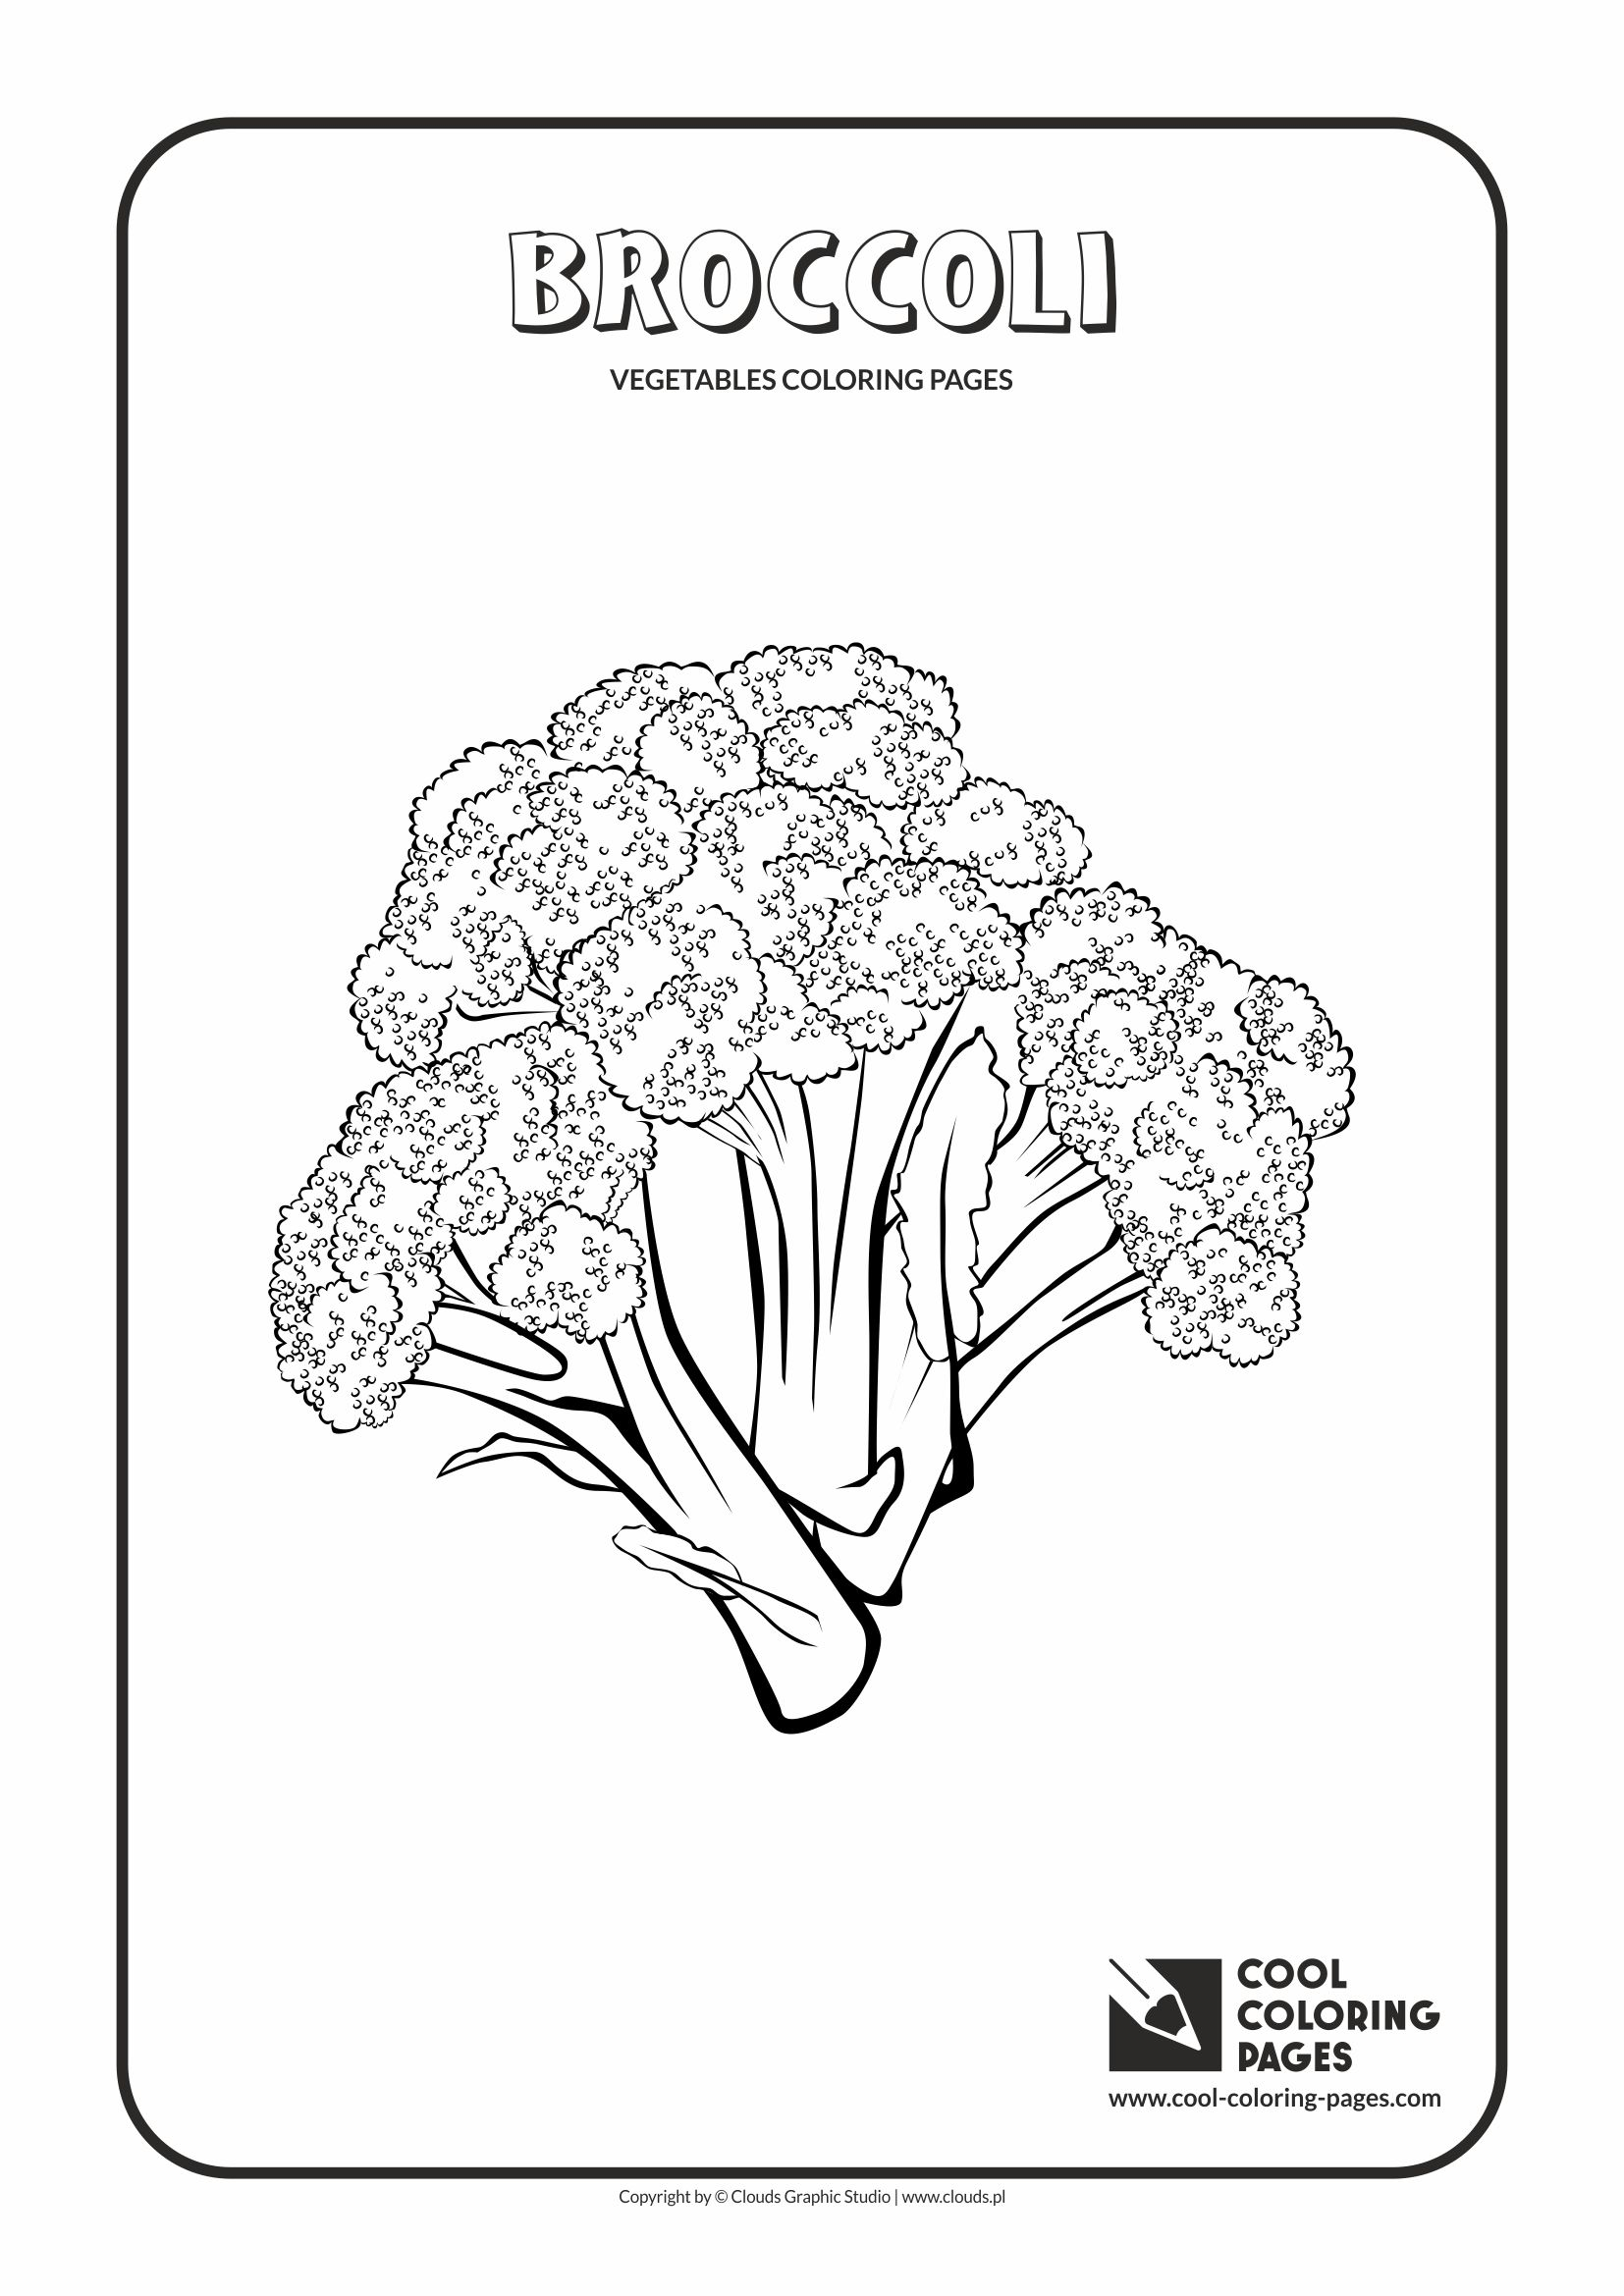 Cool Coloring Pages Vegetables Coloring Pages Cool